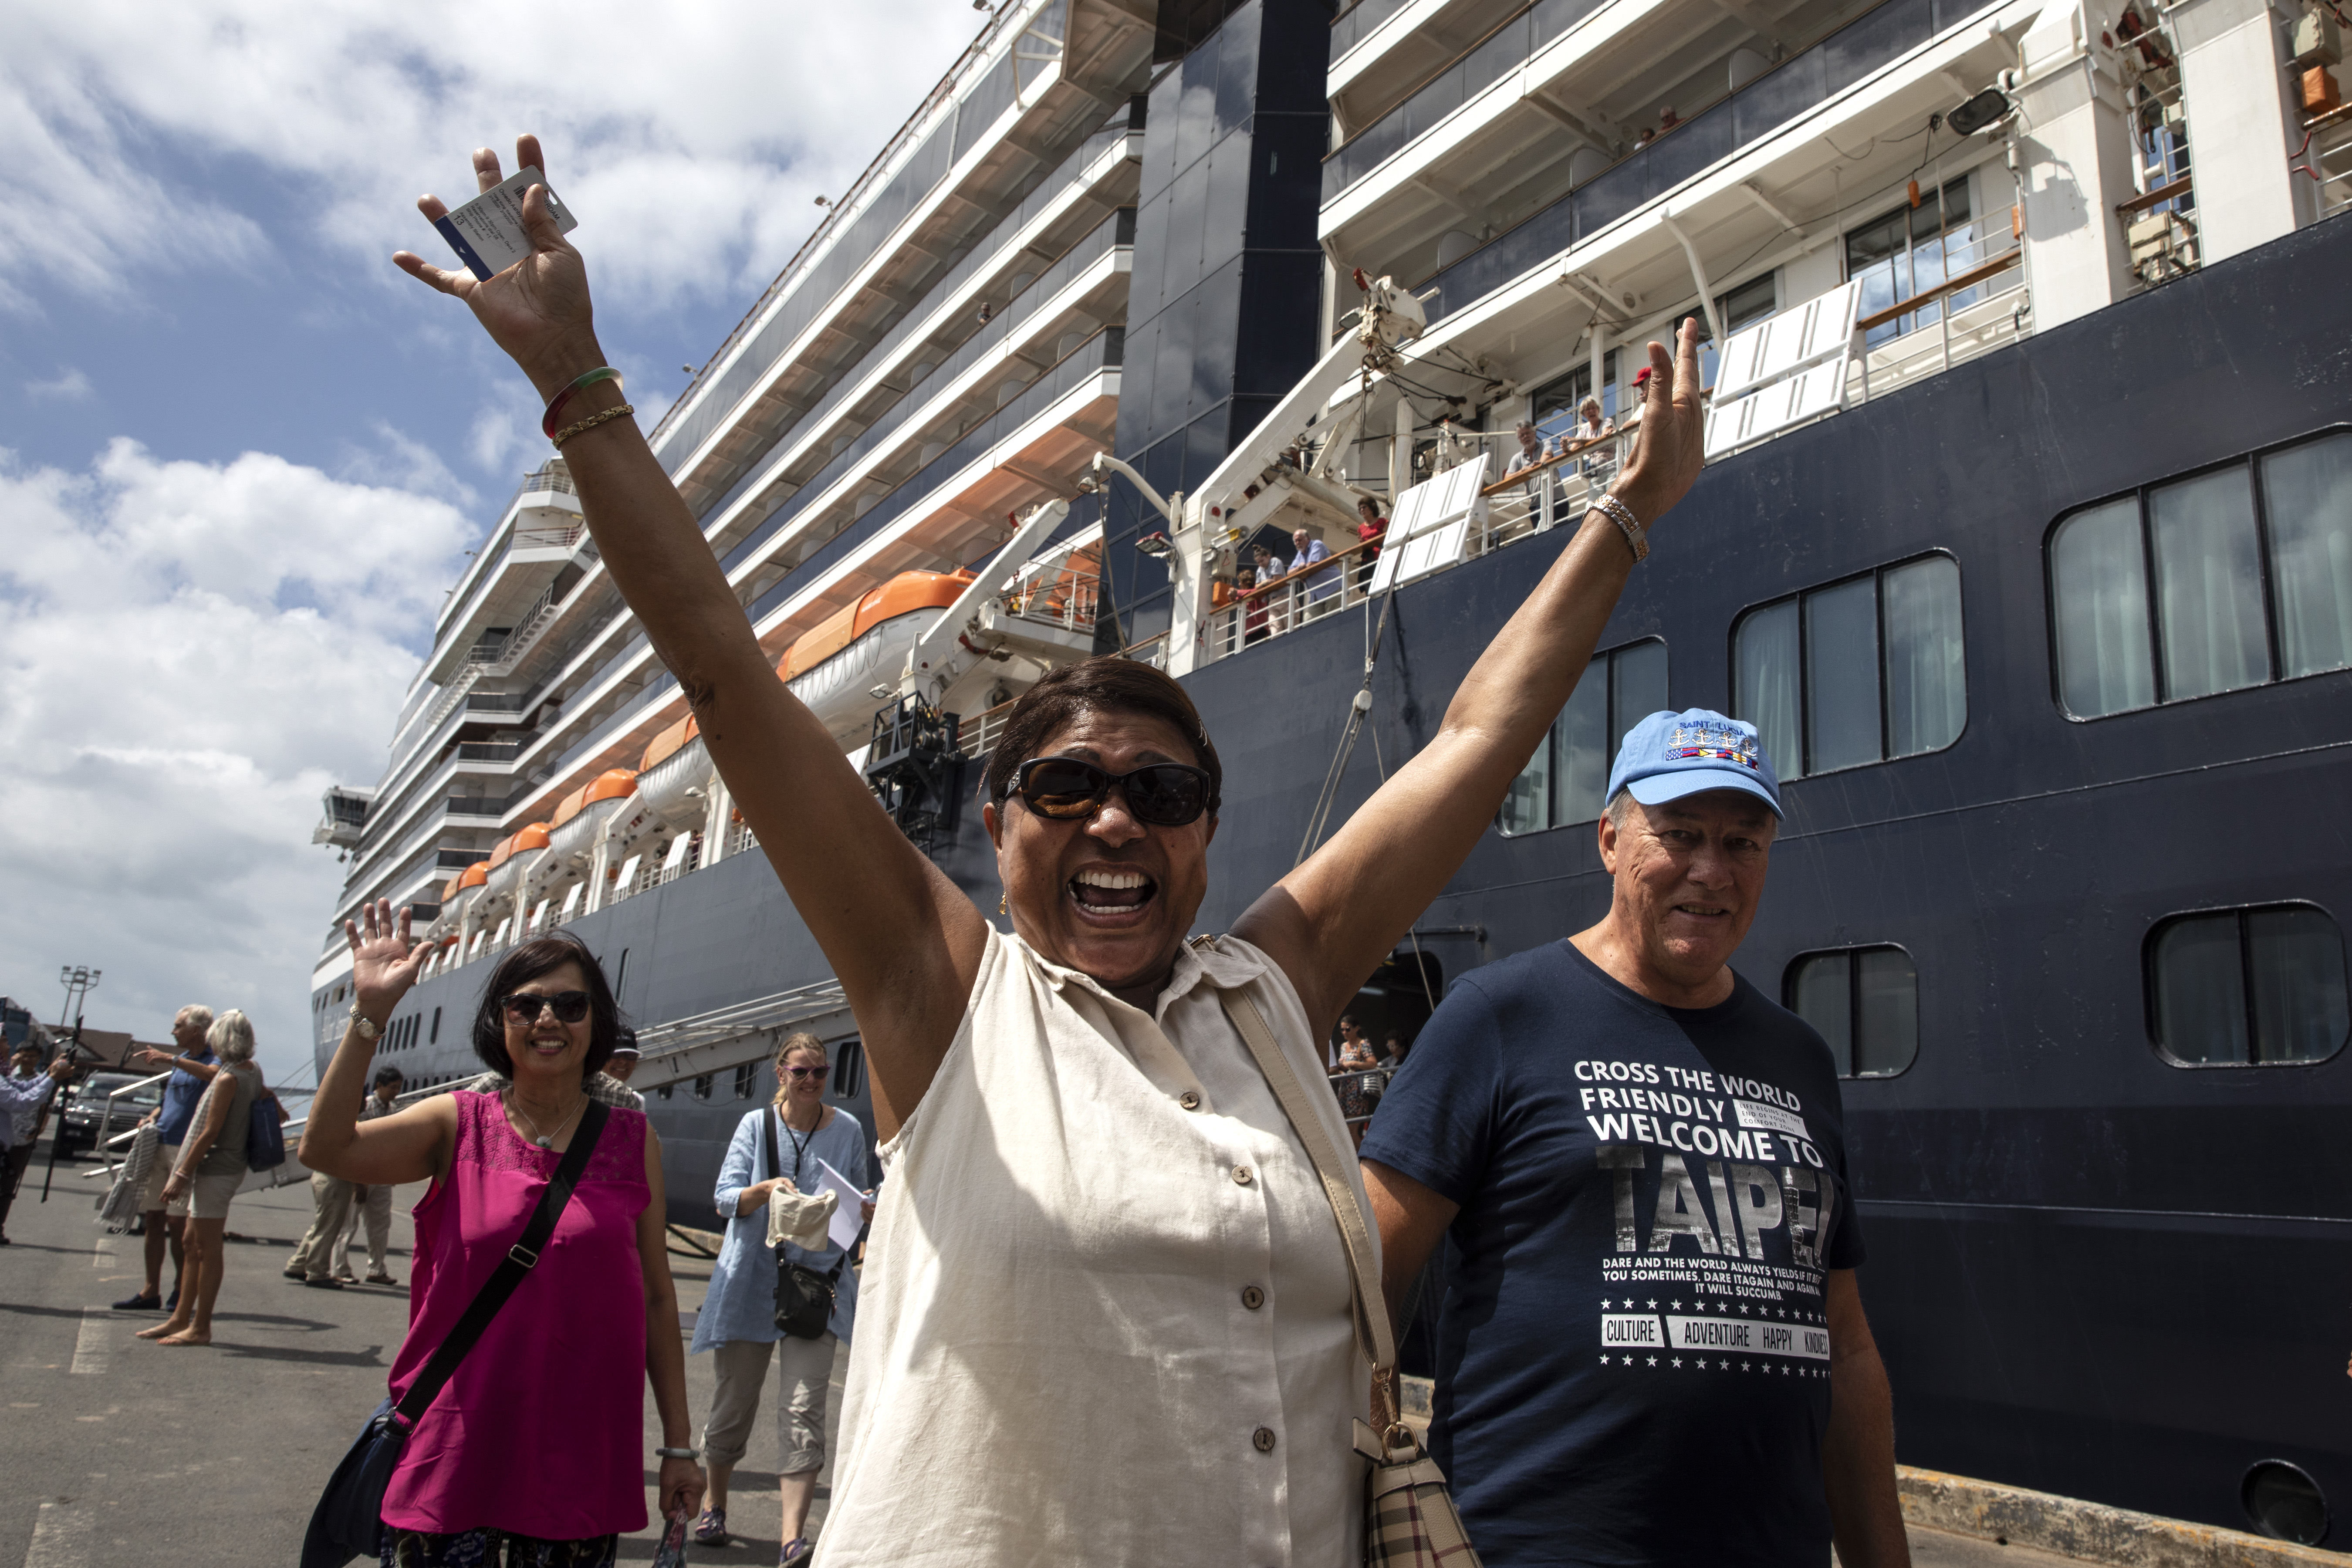 Excited passengers disembark the Westerdam cruise ship on February 14, 2020 in Sihanoukville, Cambodia